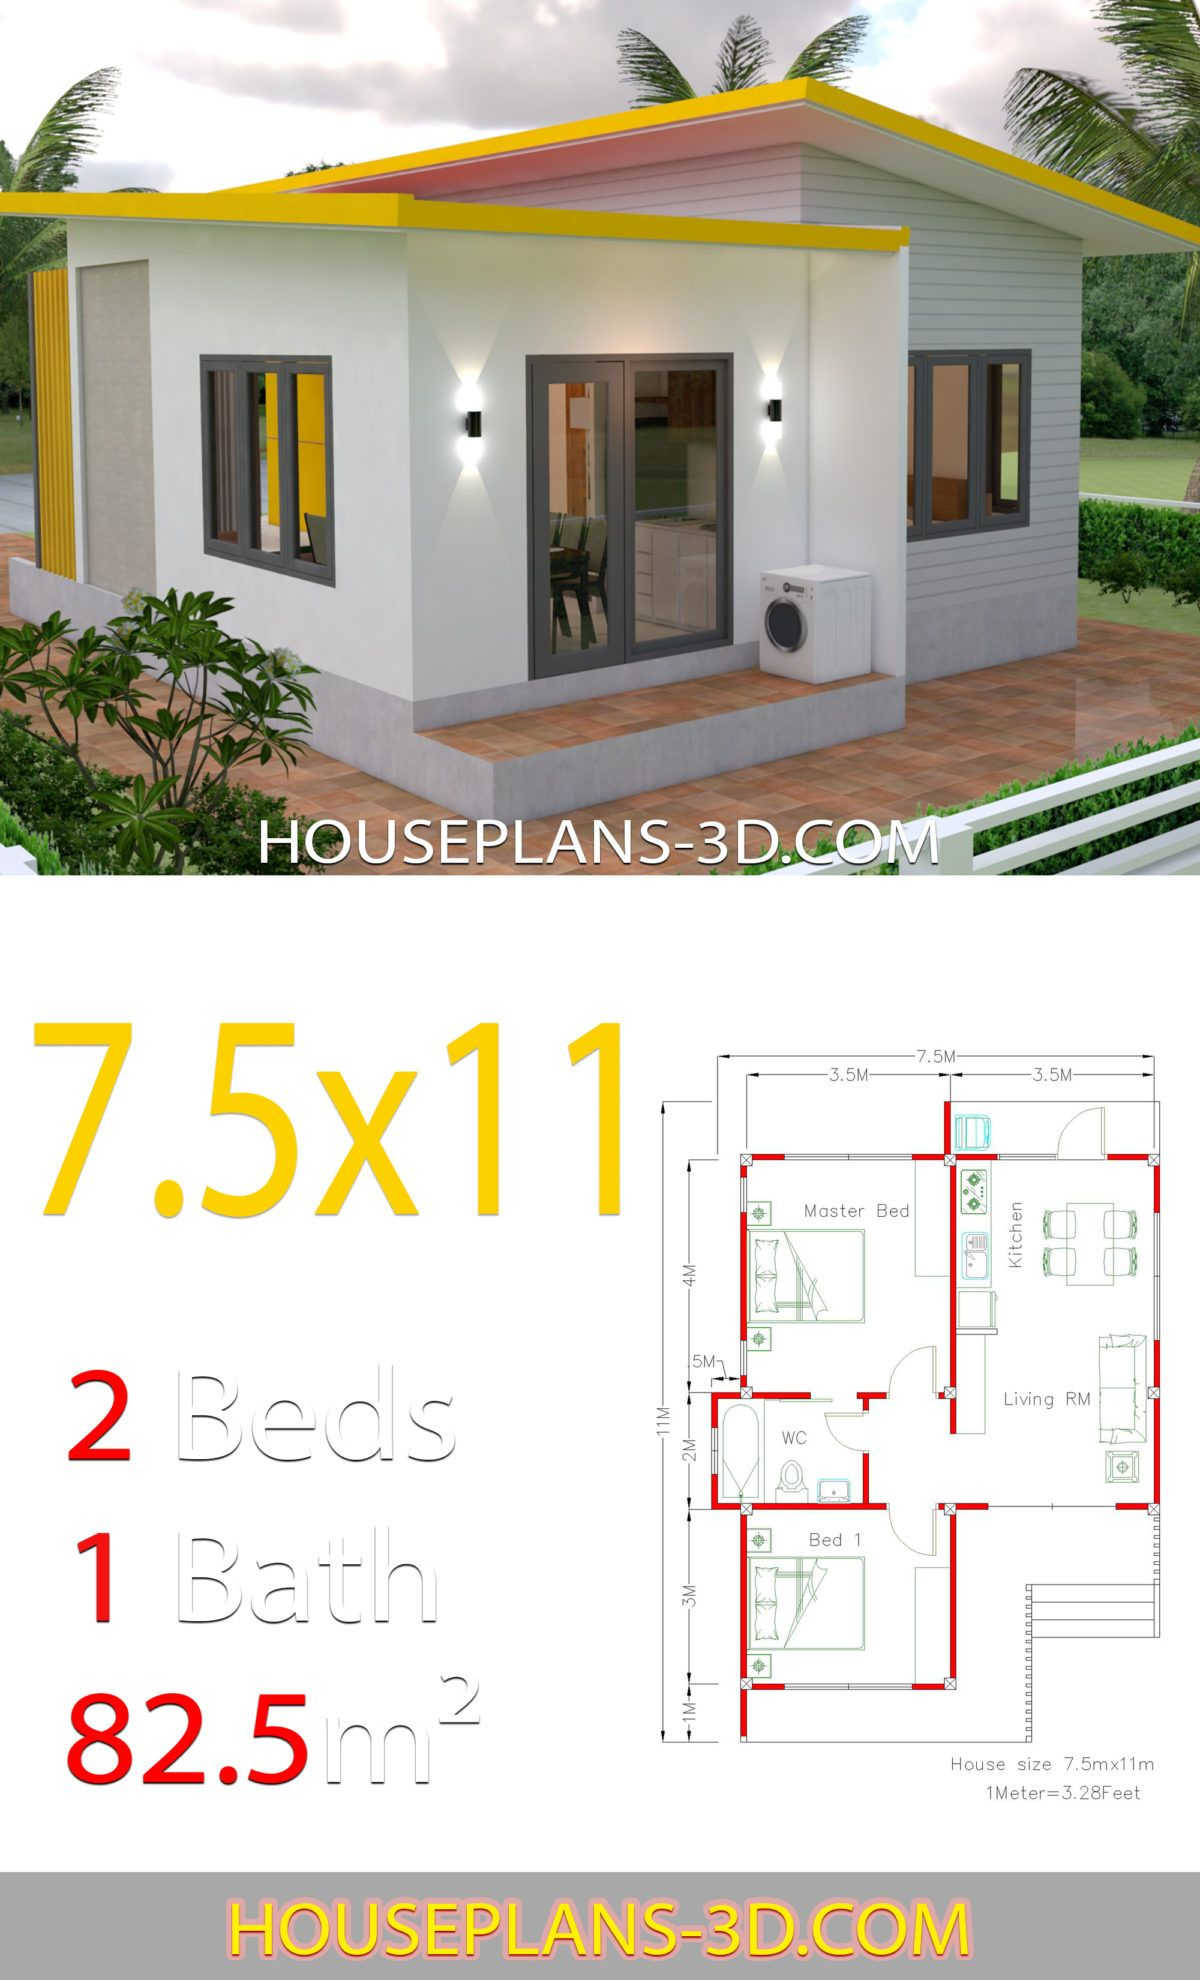 House Plans 7.5x11 with 2 Bedrooms Full plans ในปี 2020